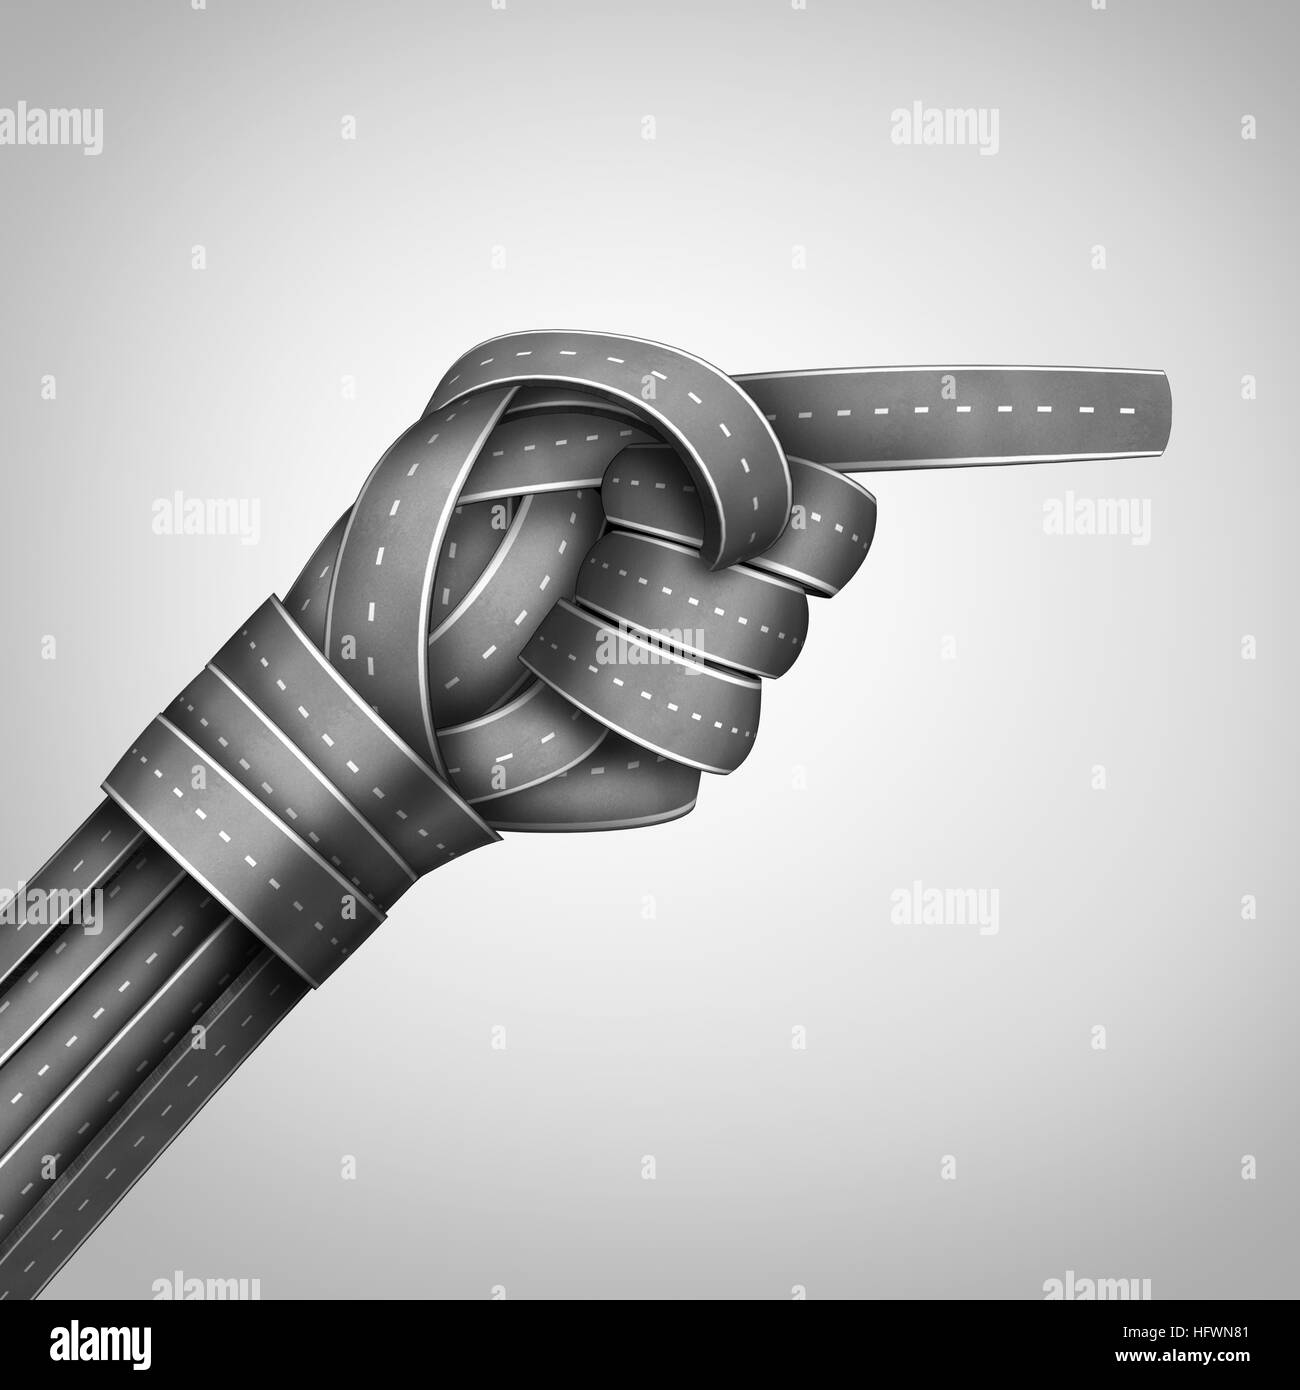 Pointing direction concept as a group of road and path objects shaped as a human hand finger point gesture as an - Stock Image